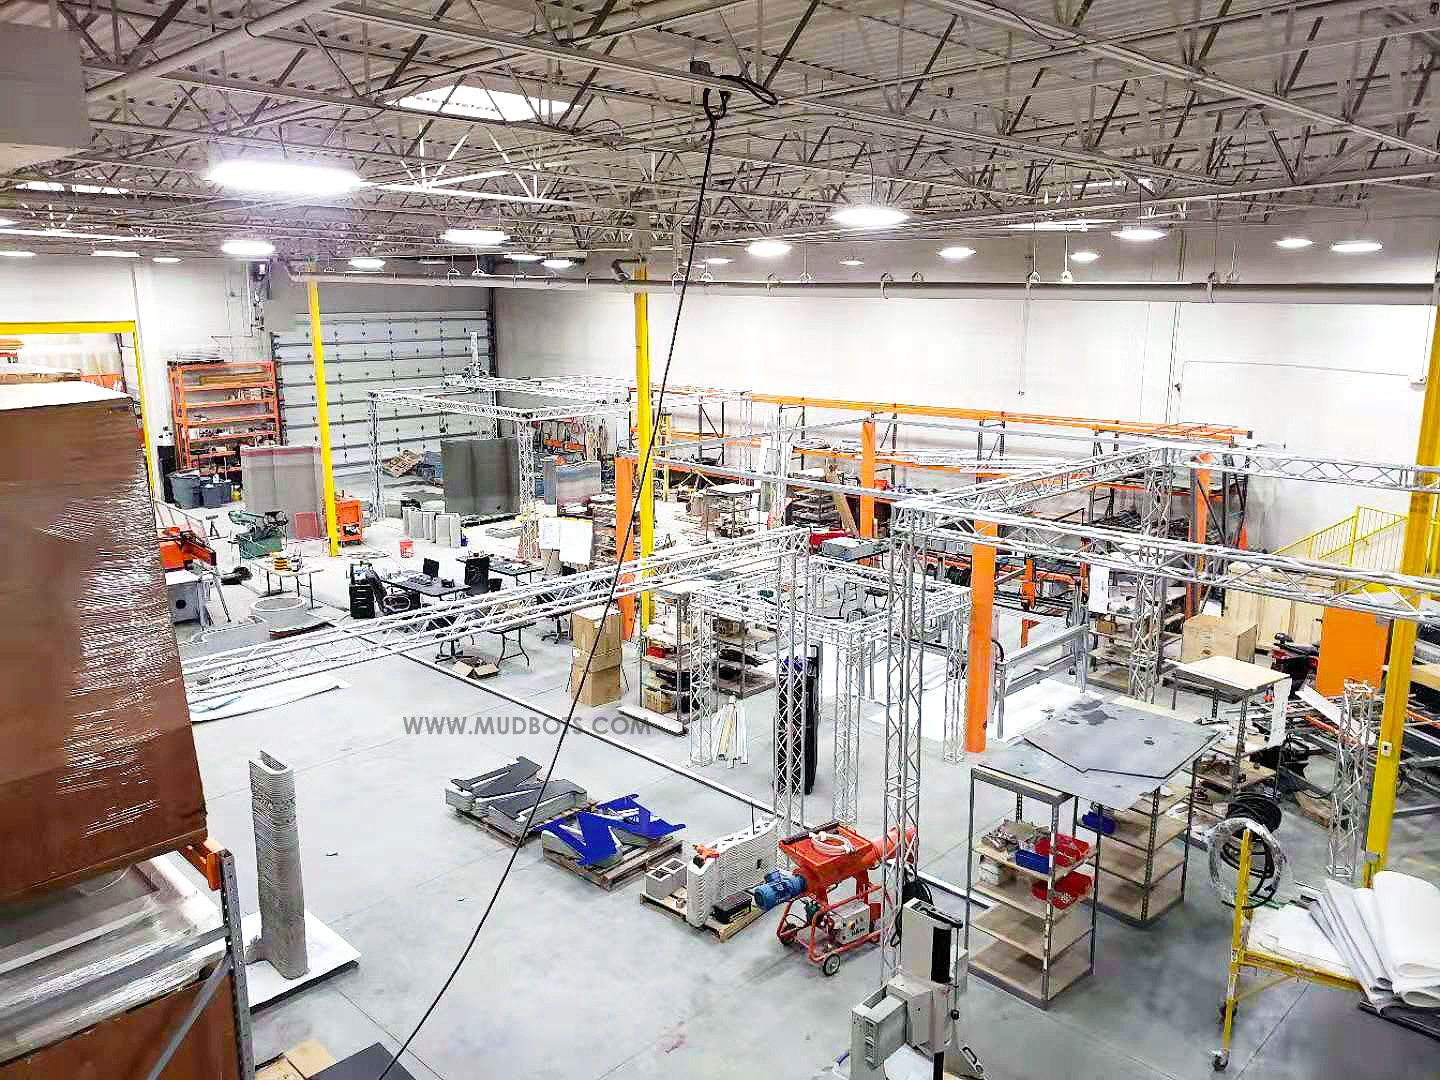 You will learn a lot when you visited our facility here in Utah. Contact our office to schedule a tour with us.